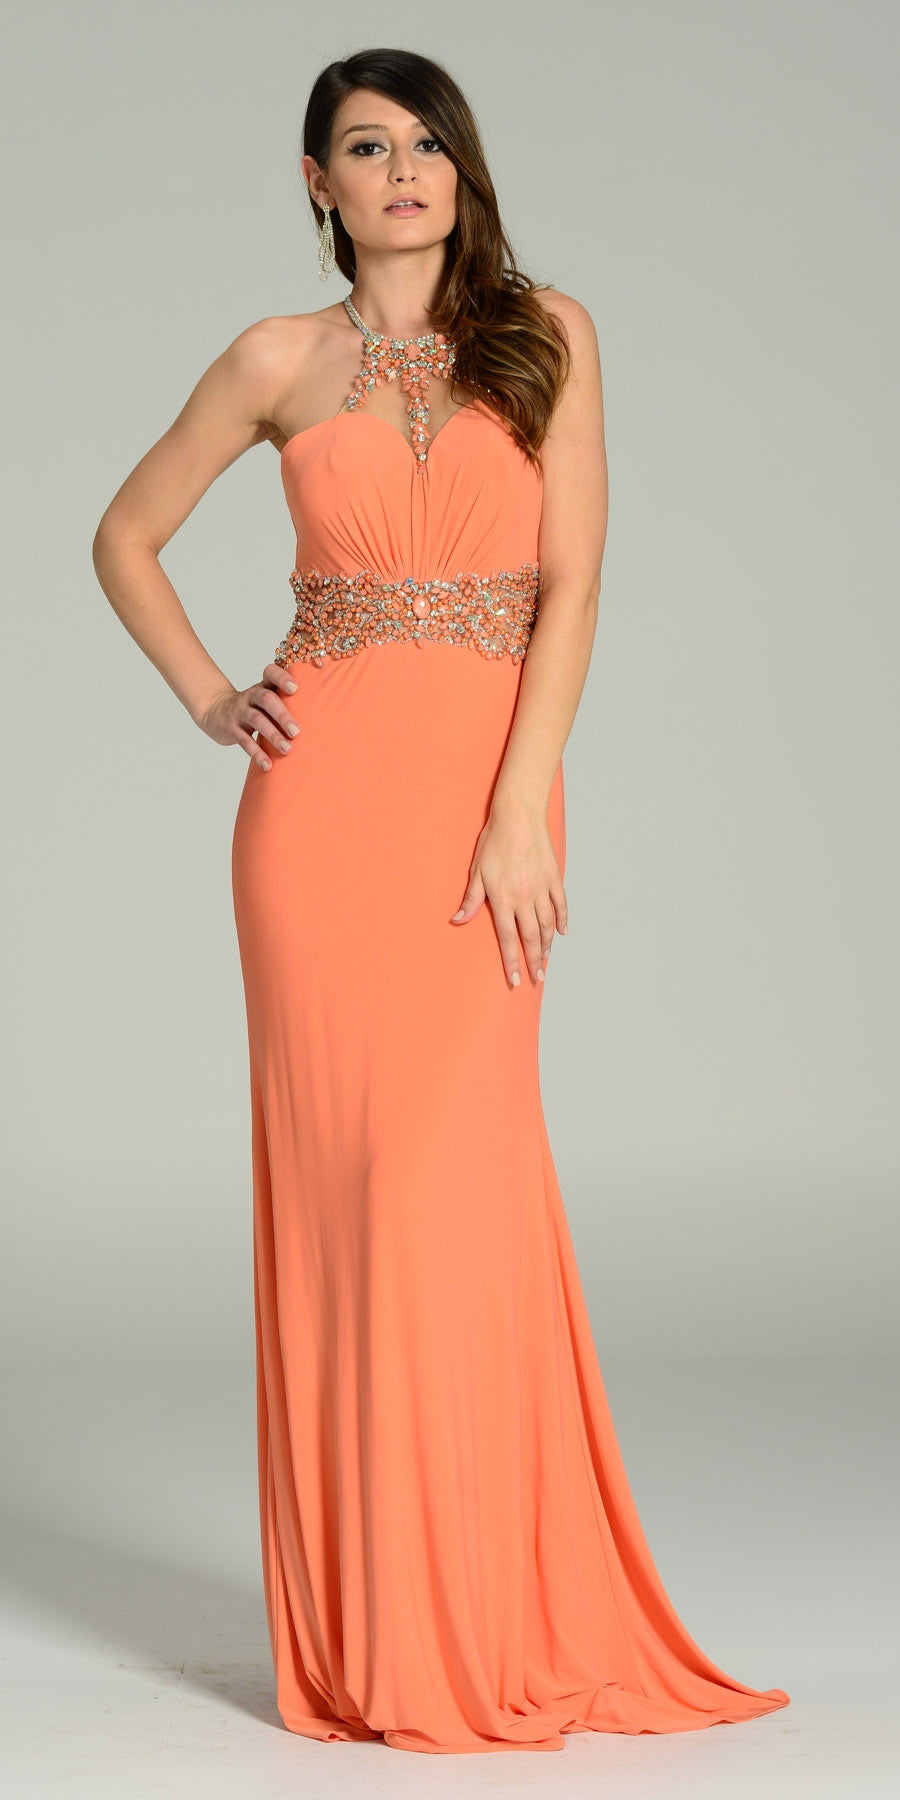 ON SPECIAL LIMITED STOCK - Rhinestone Halter Neck ITY Formal Coral Dress Floor Length